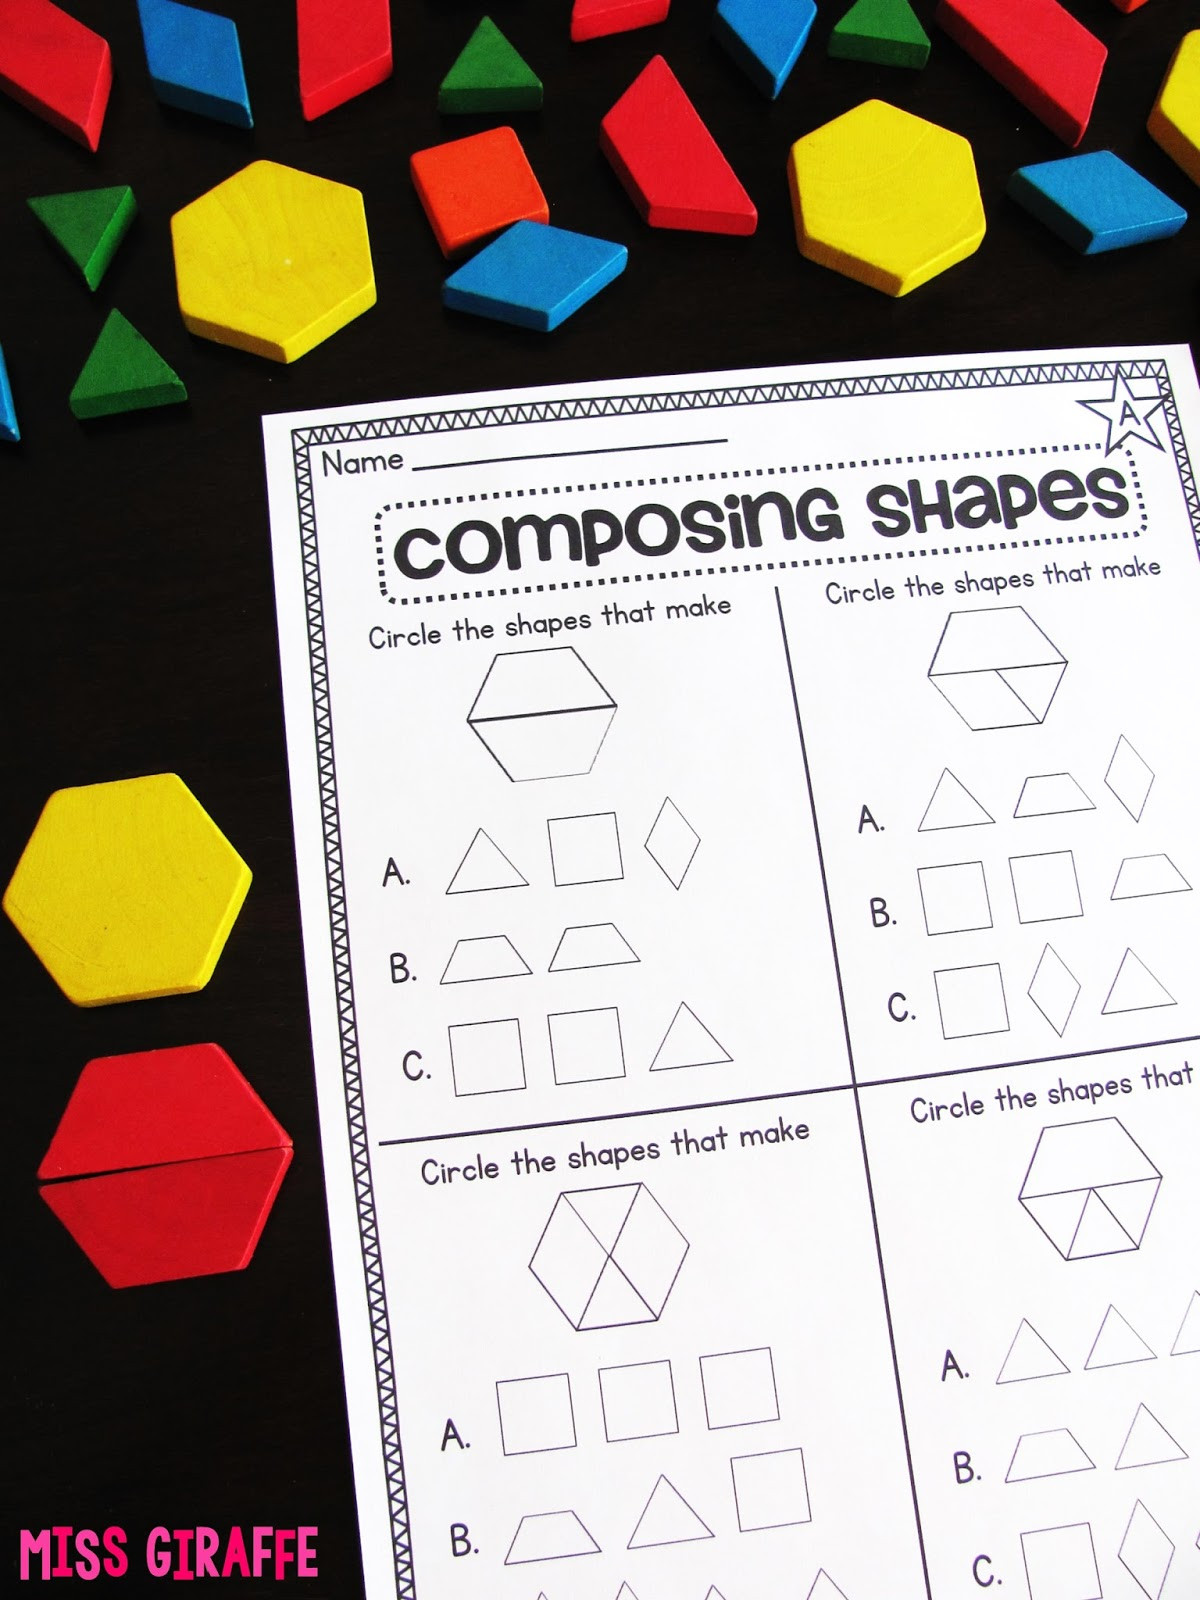 2 Dimensional Shapes Worksheet Miss Giraffe S Class Posing Shapes In 1st Grade